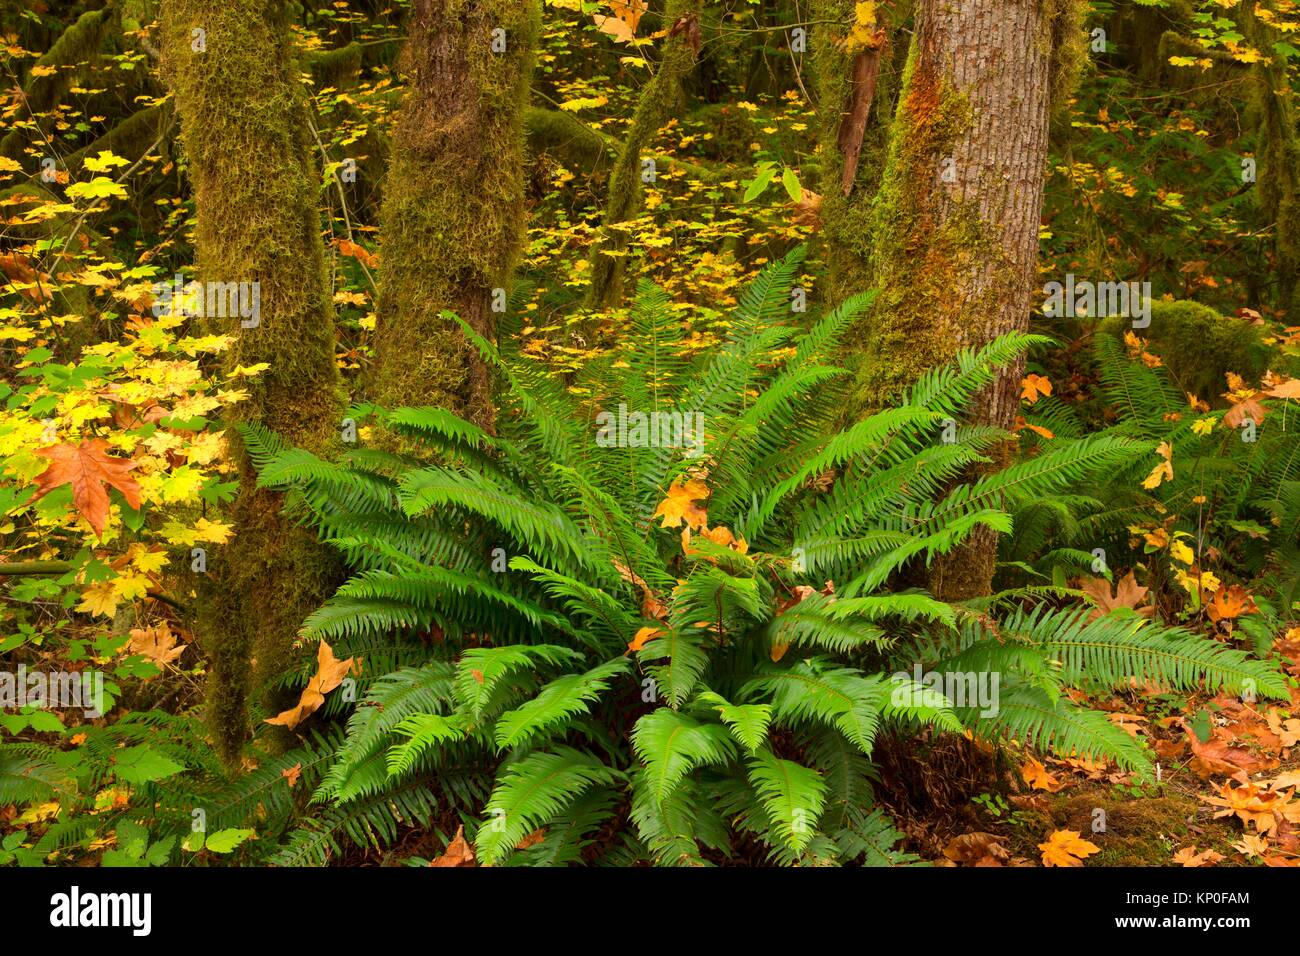 Western sword fern (Polystichum munitum) at Paradise Campground, McKenzie Wild and Scenic River, Willamette National - Stock Image